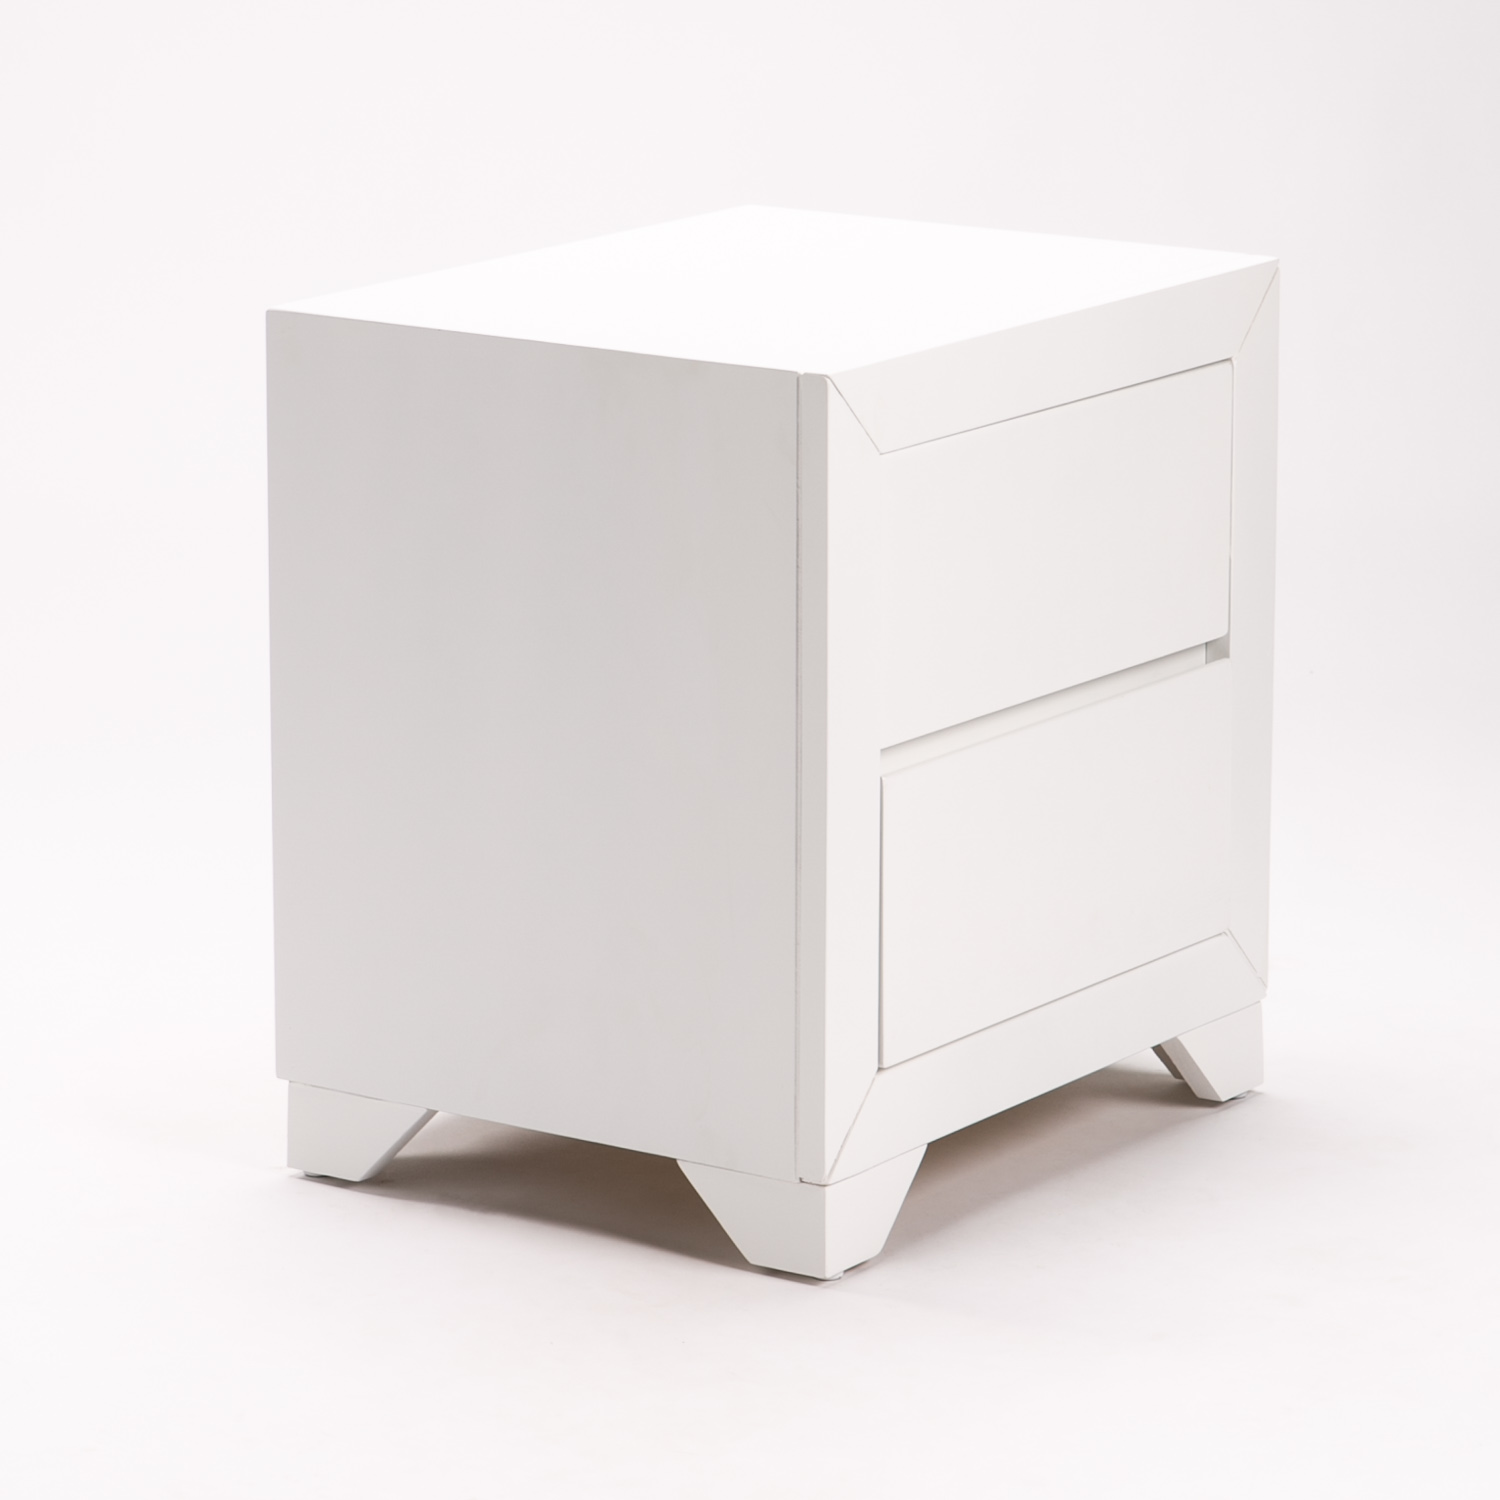 YORK 2 DRAWER PEDESTAL